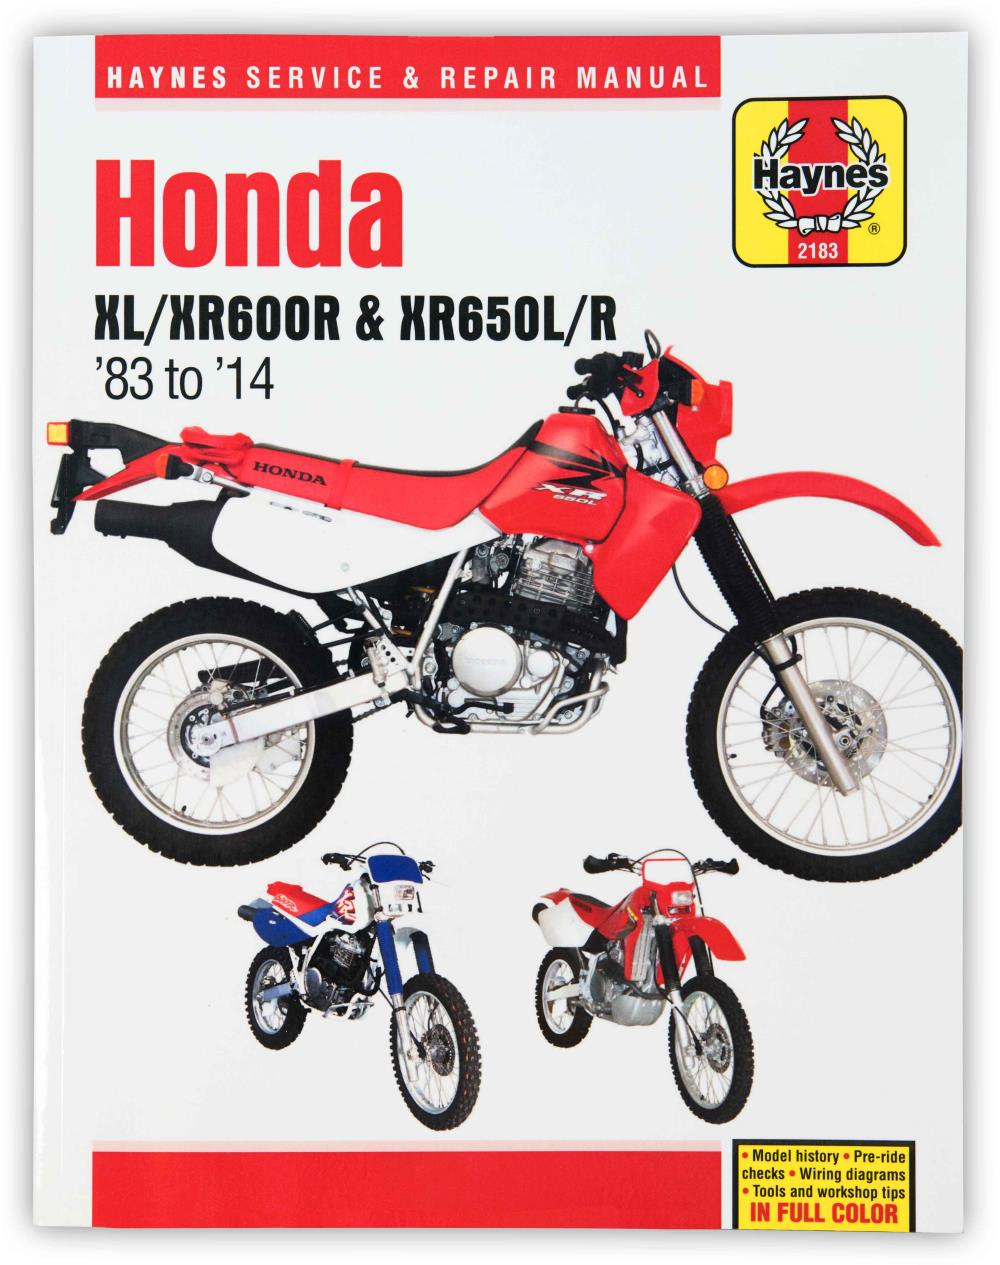 0000145_workshop manual honda xl600r 83 87 xr600r 85 00 xr650lr 93 08 manual haynes for 1986 honda xl 600 lmf ebay Kawasaki ATV Wiring Diagram at eliteediting.co